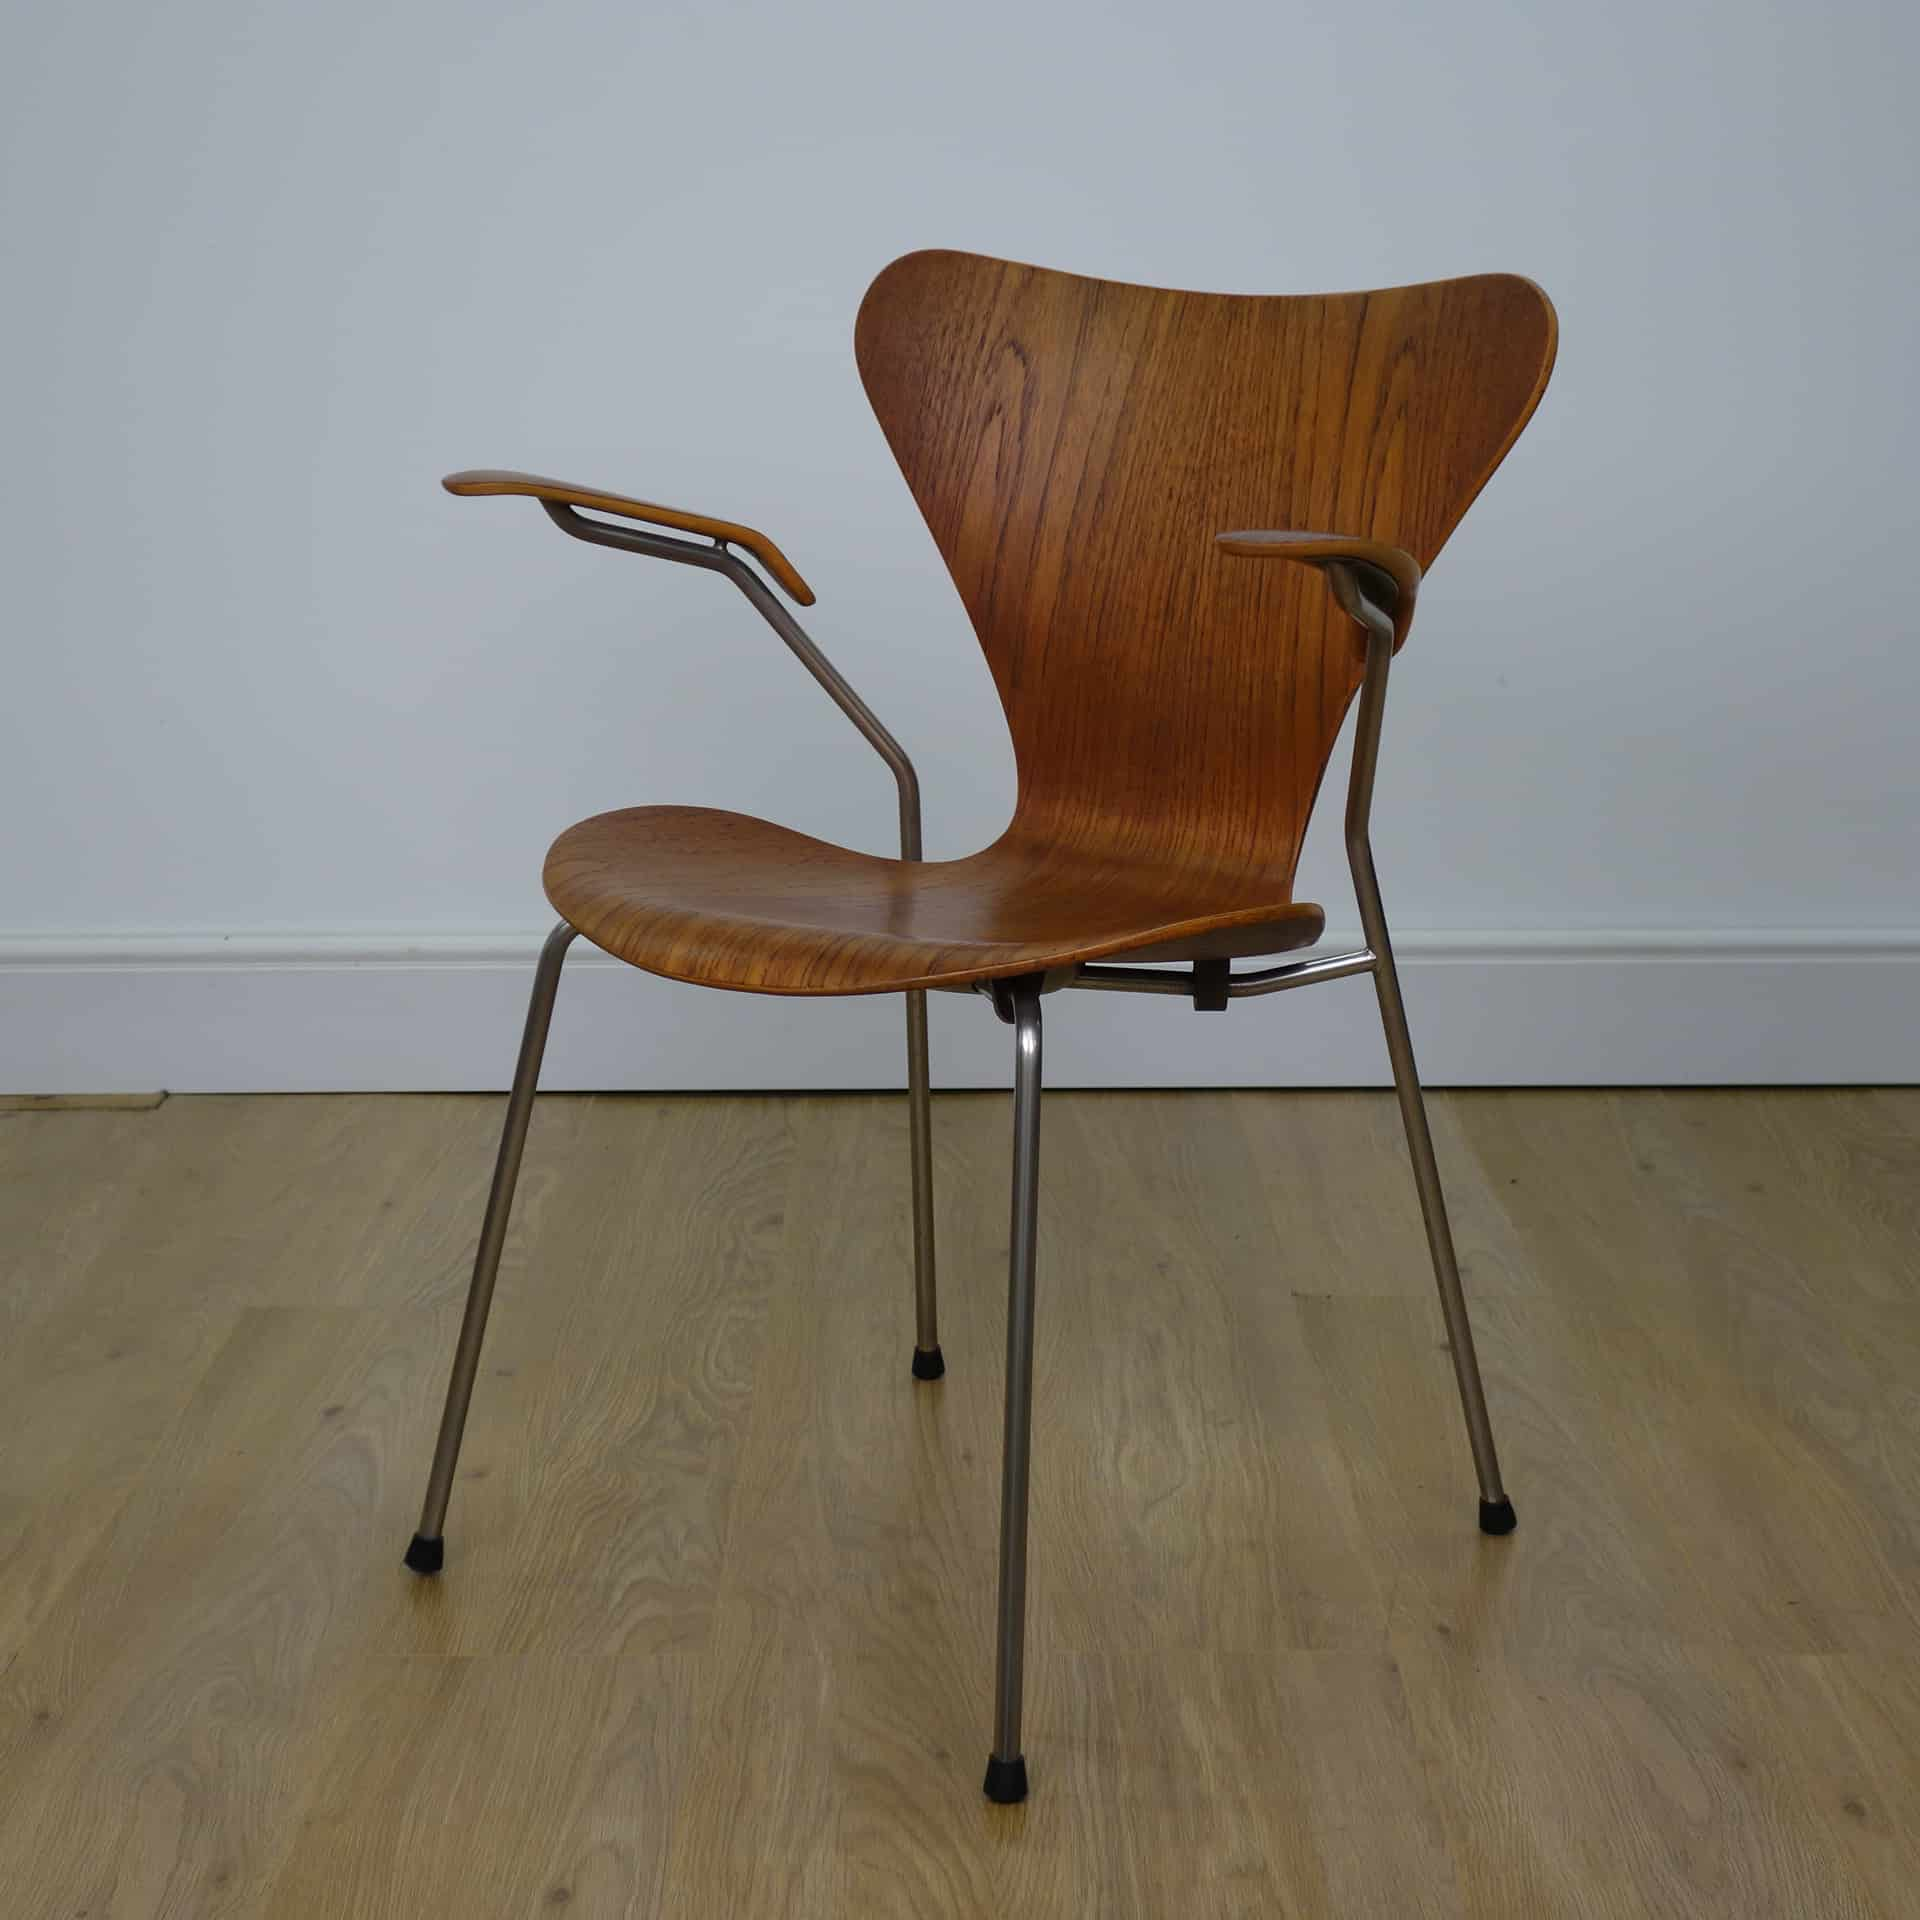 1950s teak 3107 chair with arms by Arne Jacobsen